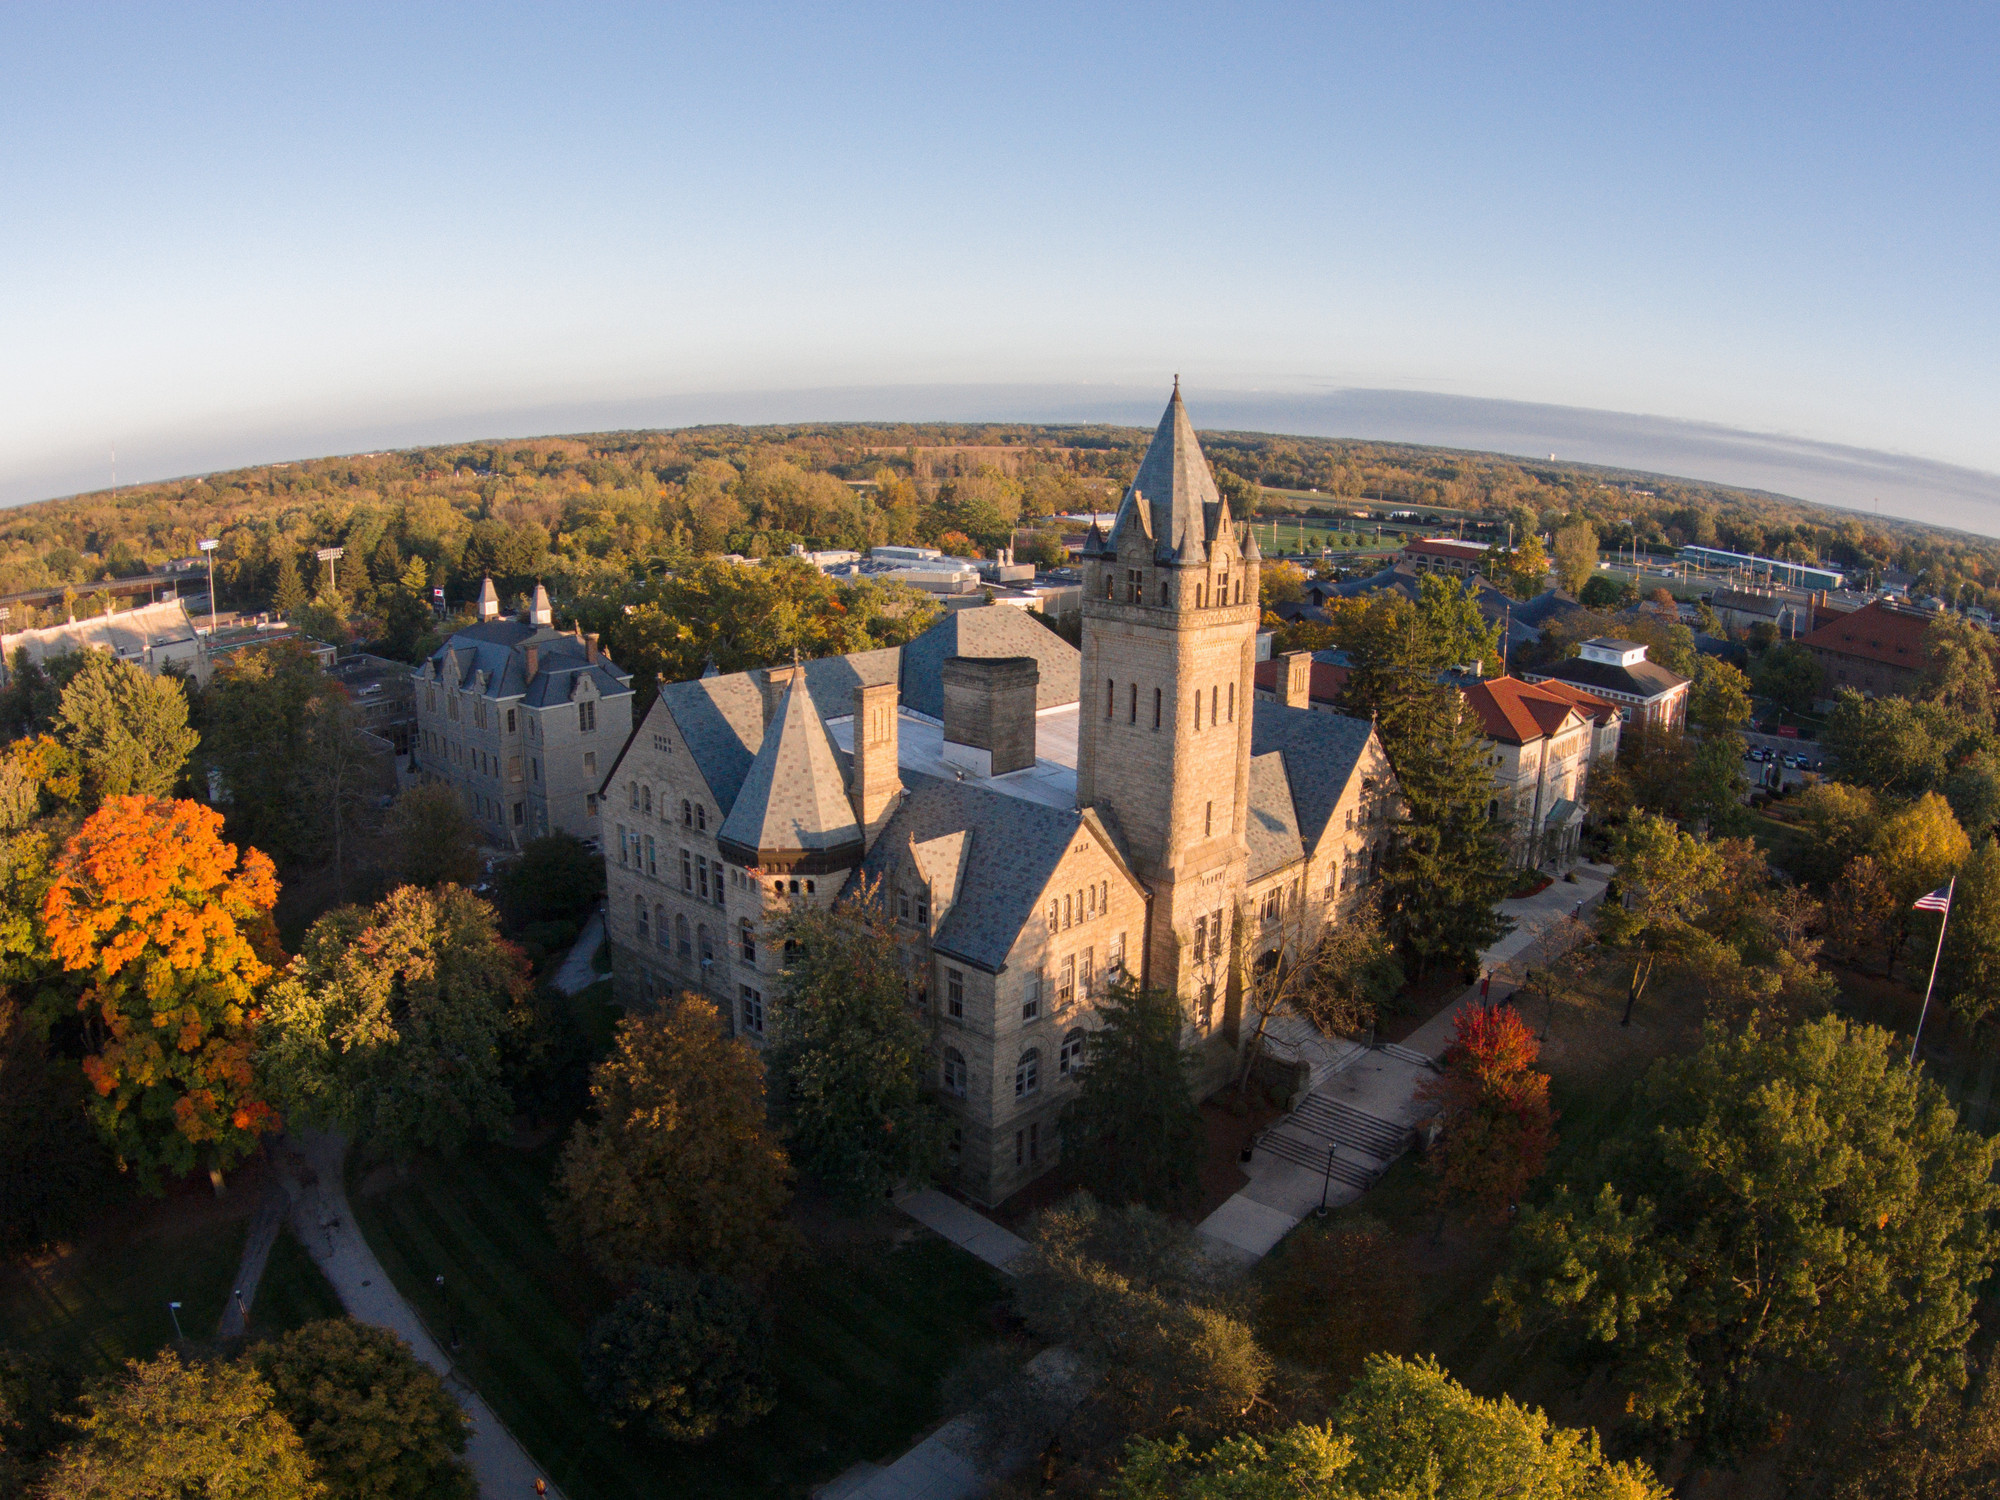 Ohio wesleyan university aerial image